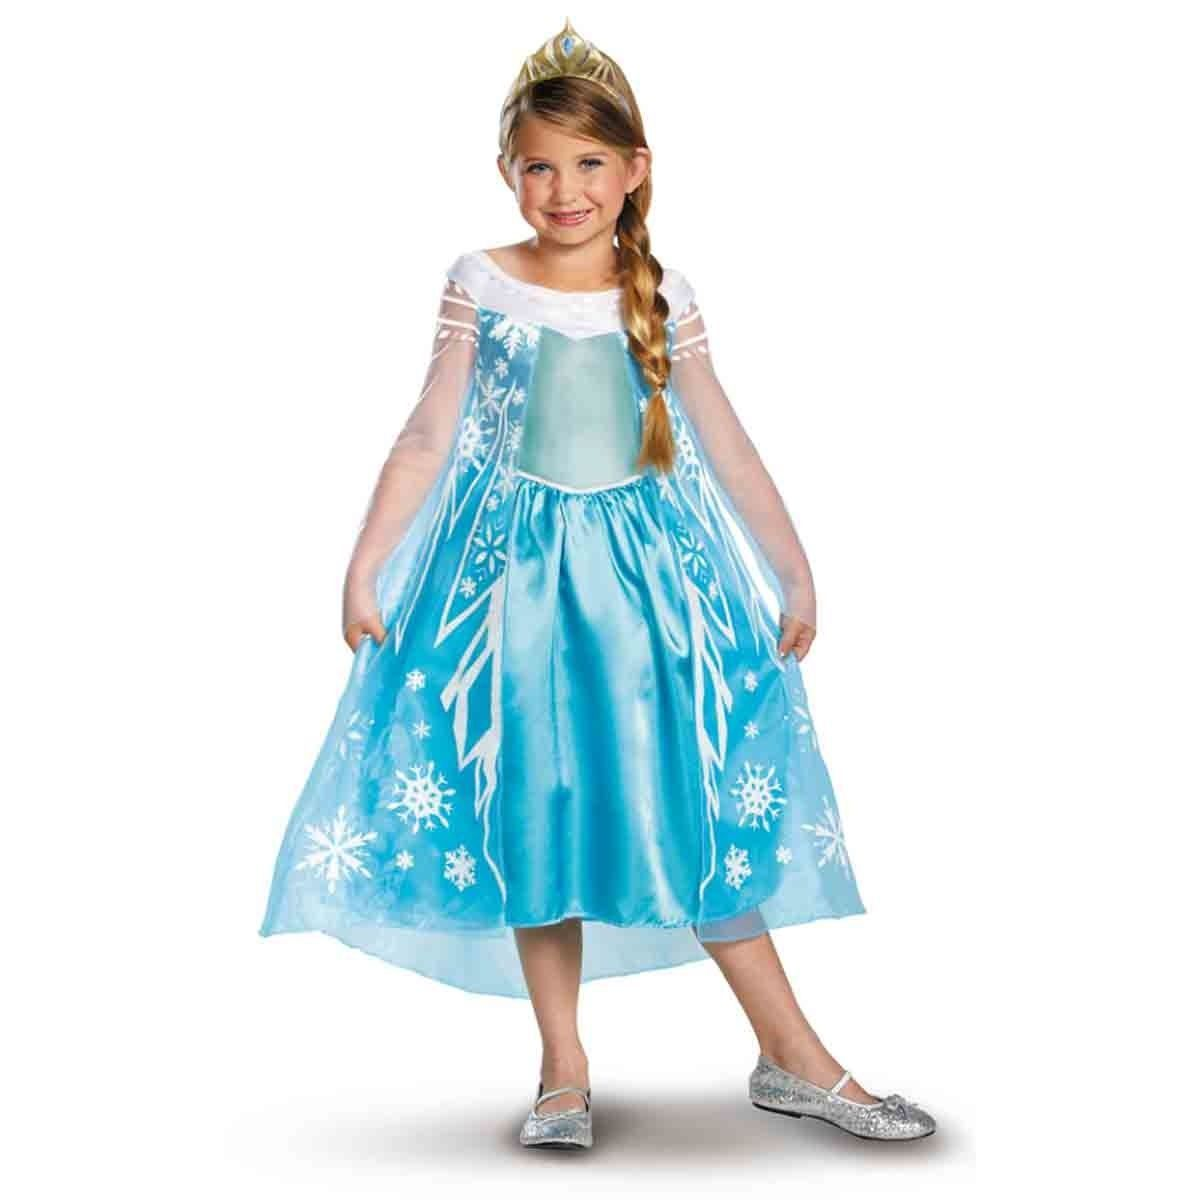 Frozen Princess Elsa Deluxe Aqua Blue Dress Child Costume/Tiara Disguise 56998 -